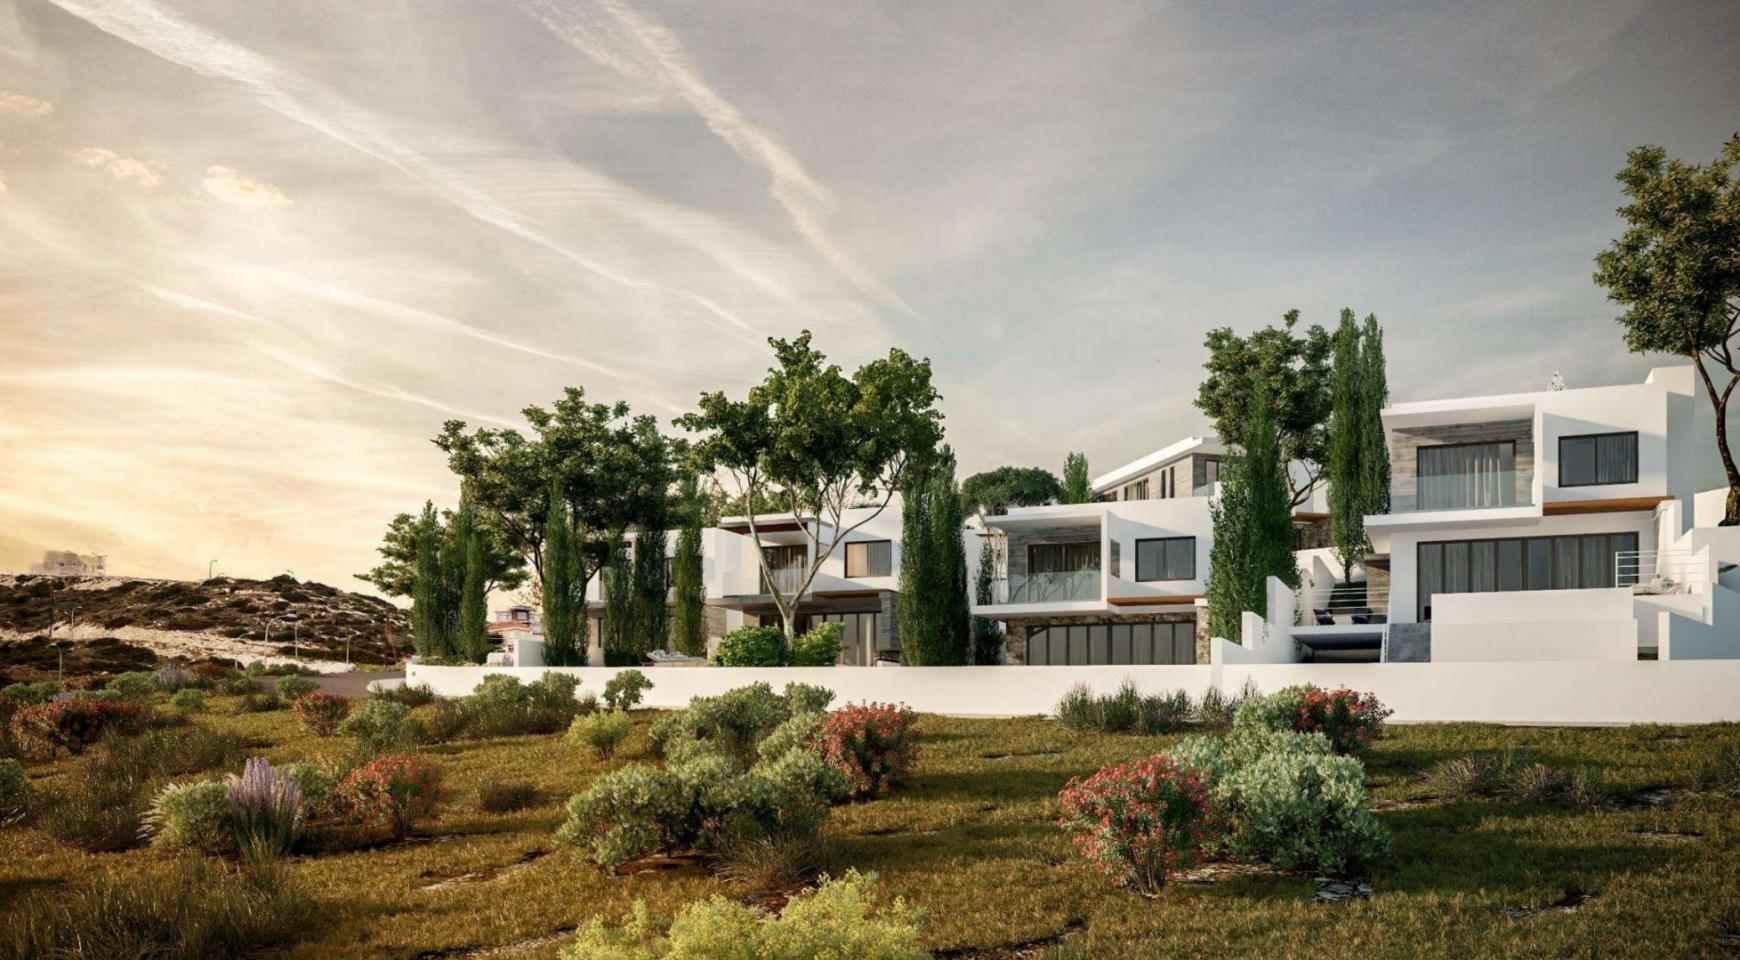 4 Bedroom Villa within a New Project in Agios Tychonas Area - 9